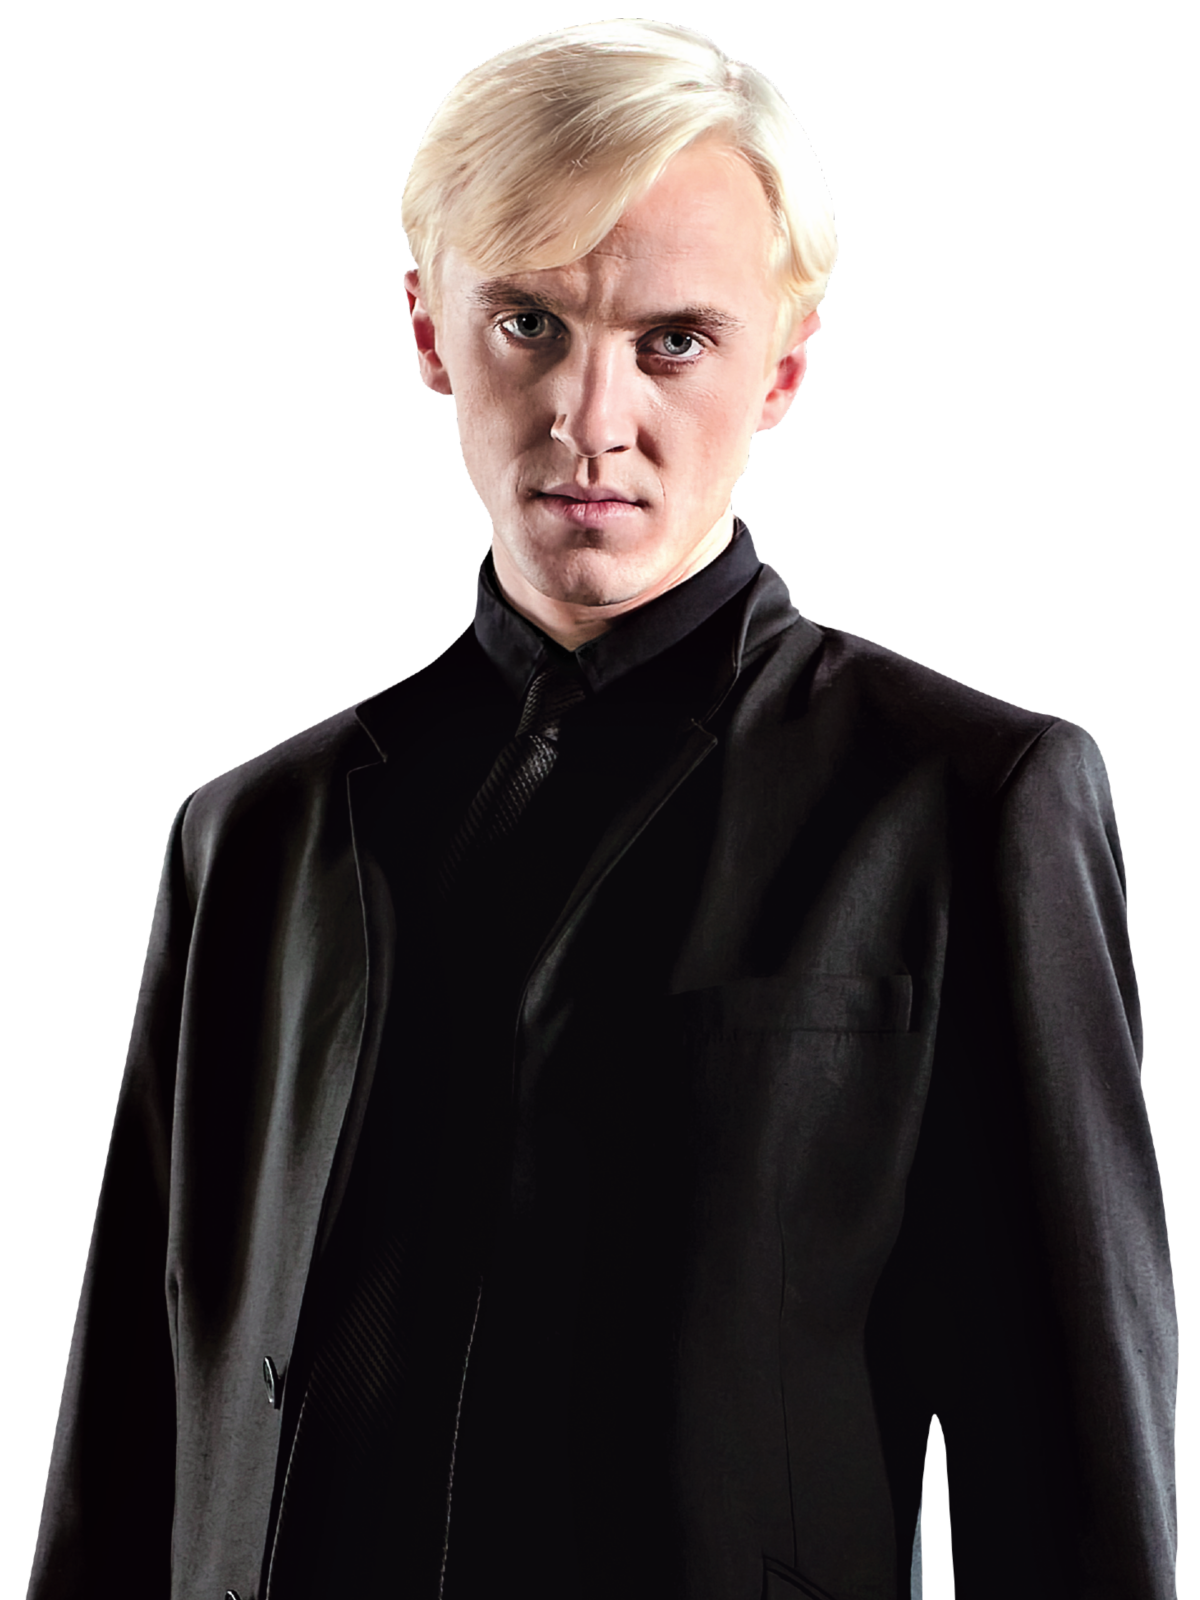 Draco Malfoy Harry Potter Wiki Fandom The son of a death eater, draco was raised to believe strongly in the importance of blood purity. draco malfoy harry potter wiki fandom